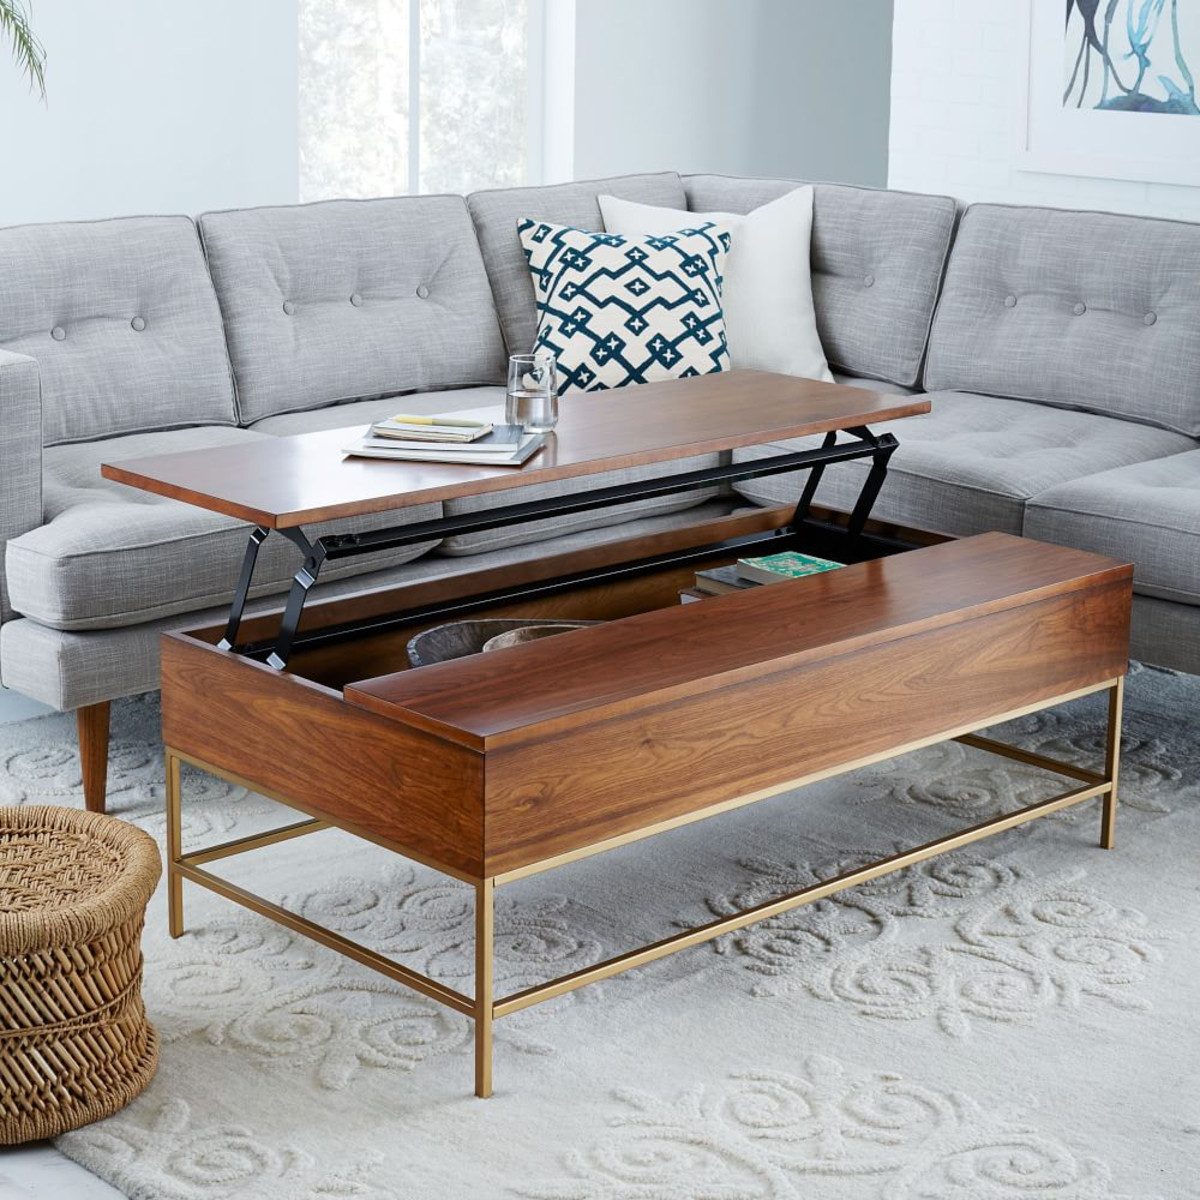 Best Coffee Tables For Small Spaces - West elm table and chairs